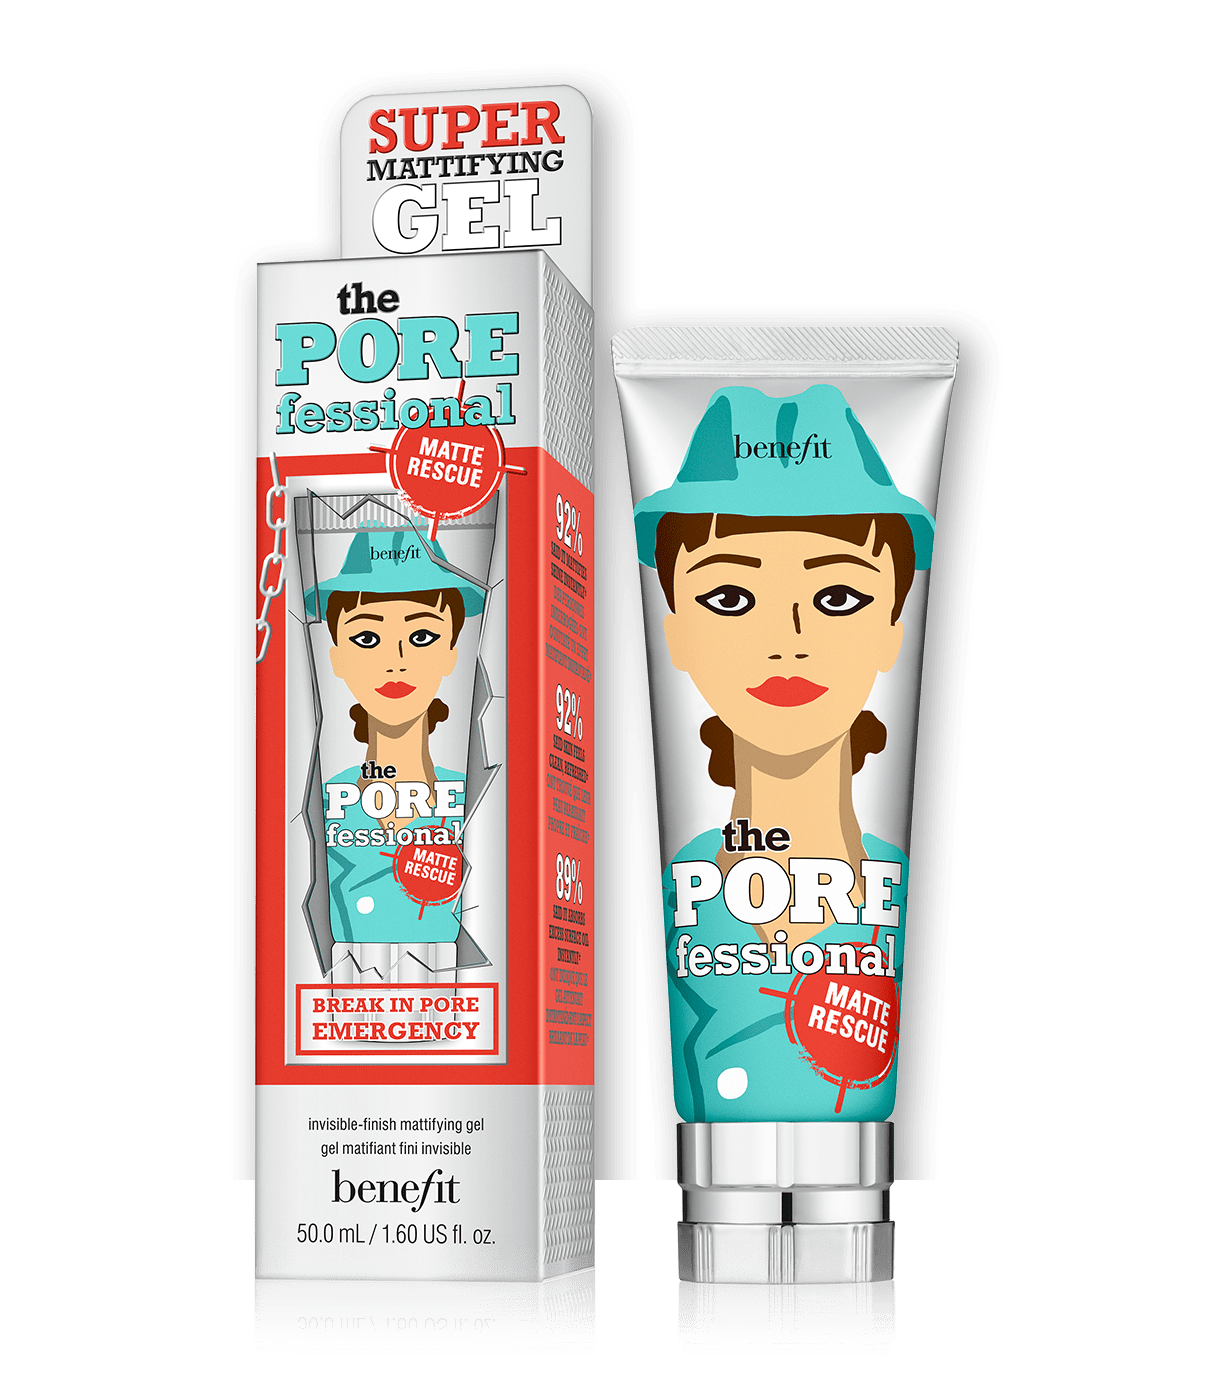 the-porefessional-matte-rescue-hero